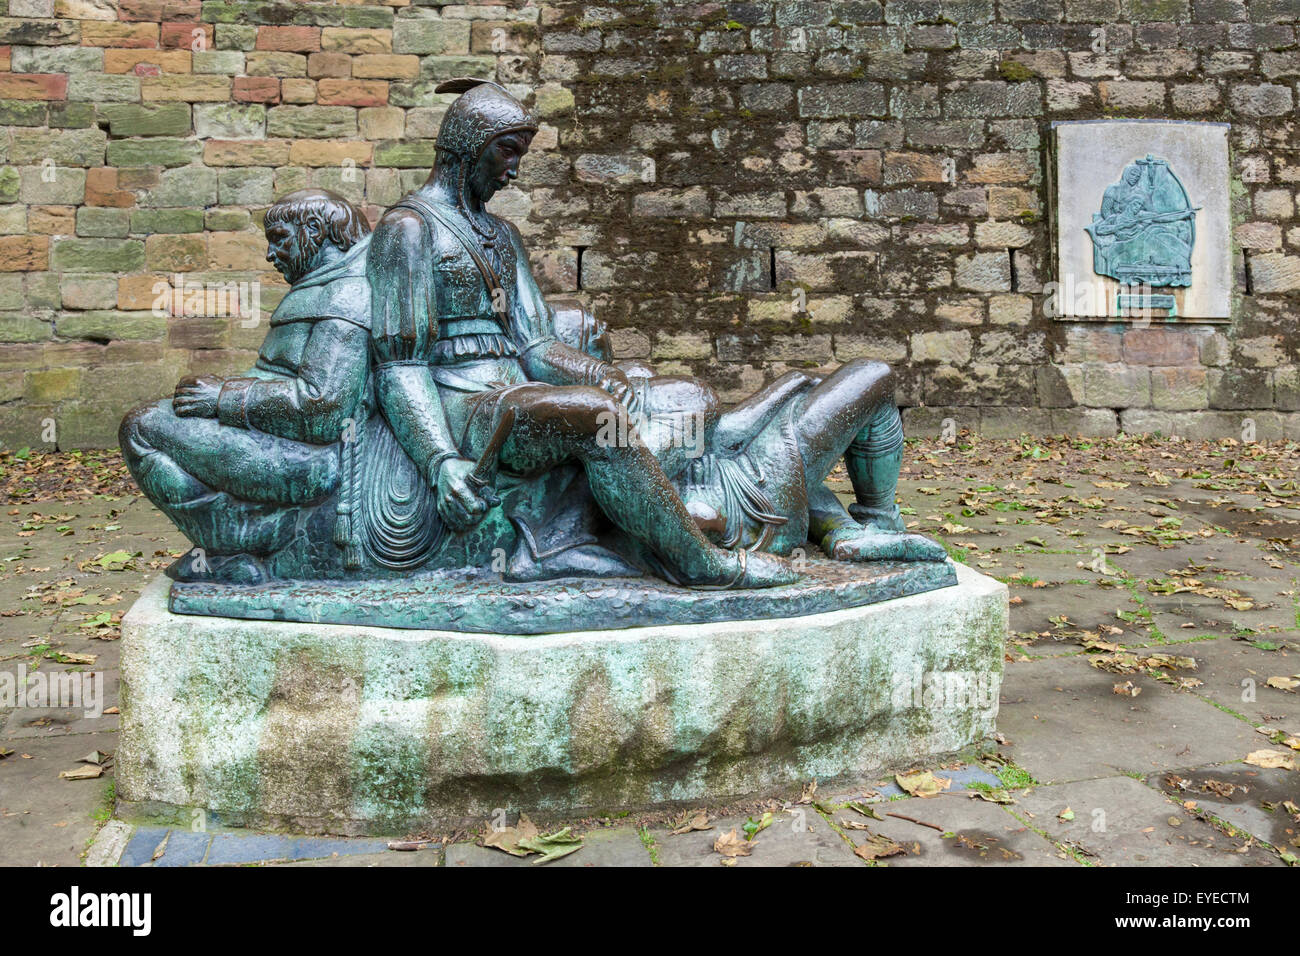 Sculpture of the Merry Men, Friar Tuck, Will Scarlet and Little John, next to the walls of Nottingham Castle, England, - Stock Image